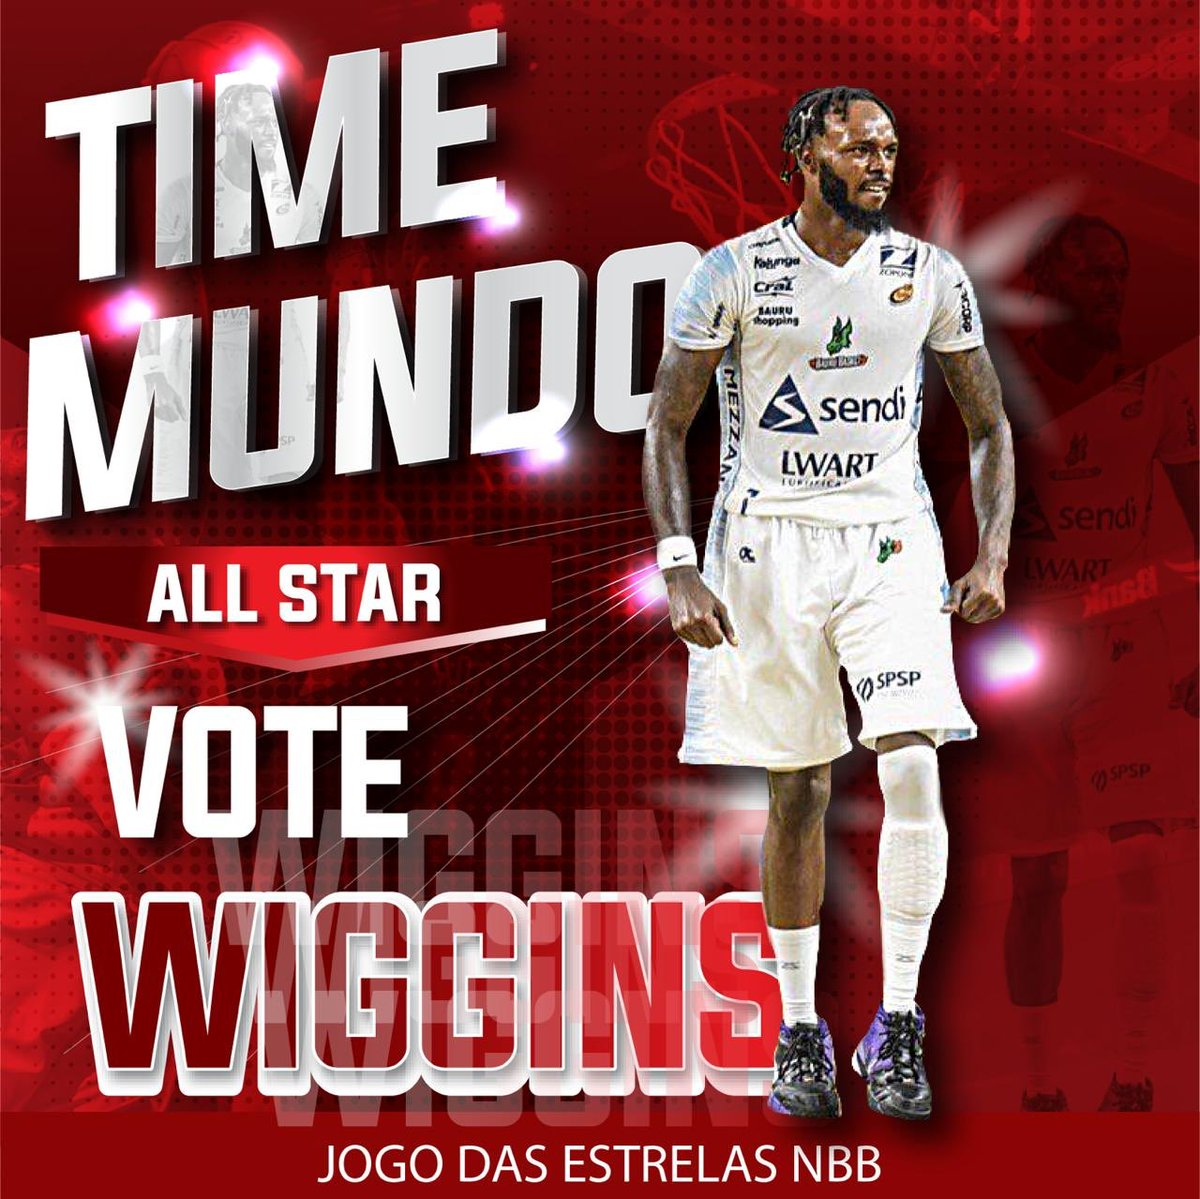 5 MORE DAYS to vote! ✅ Help me get into the @NBB Game of Stars! I appreciate all the love & support! All you have to do is...   Tweet ➡️ Nick Wiggins #JogodasEstrelasNBB https://t.co/q3MVN6WgRi